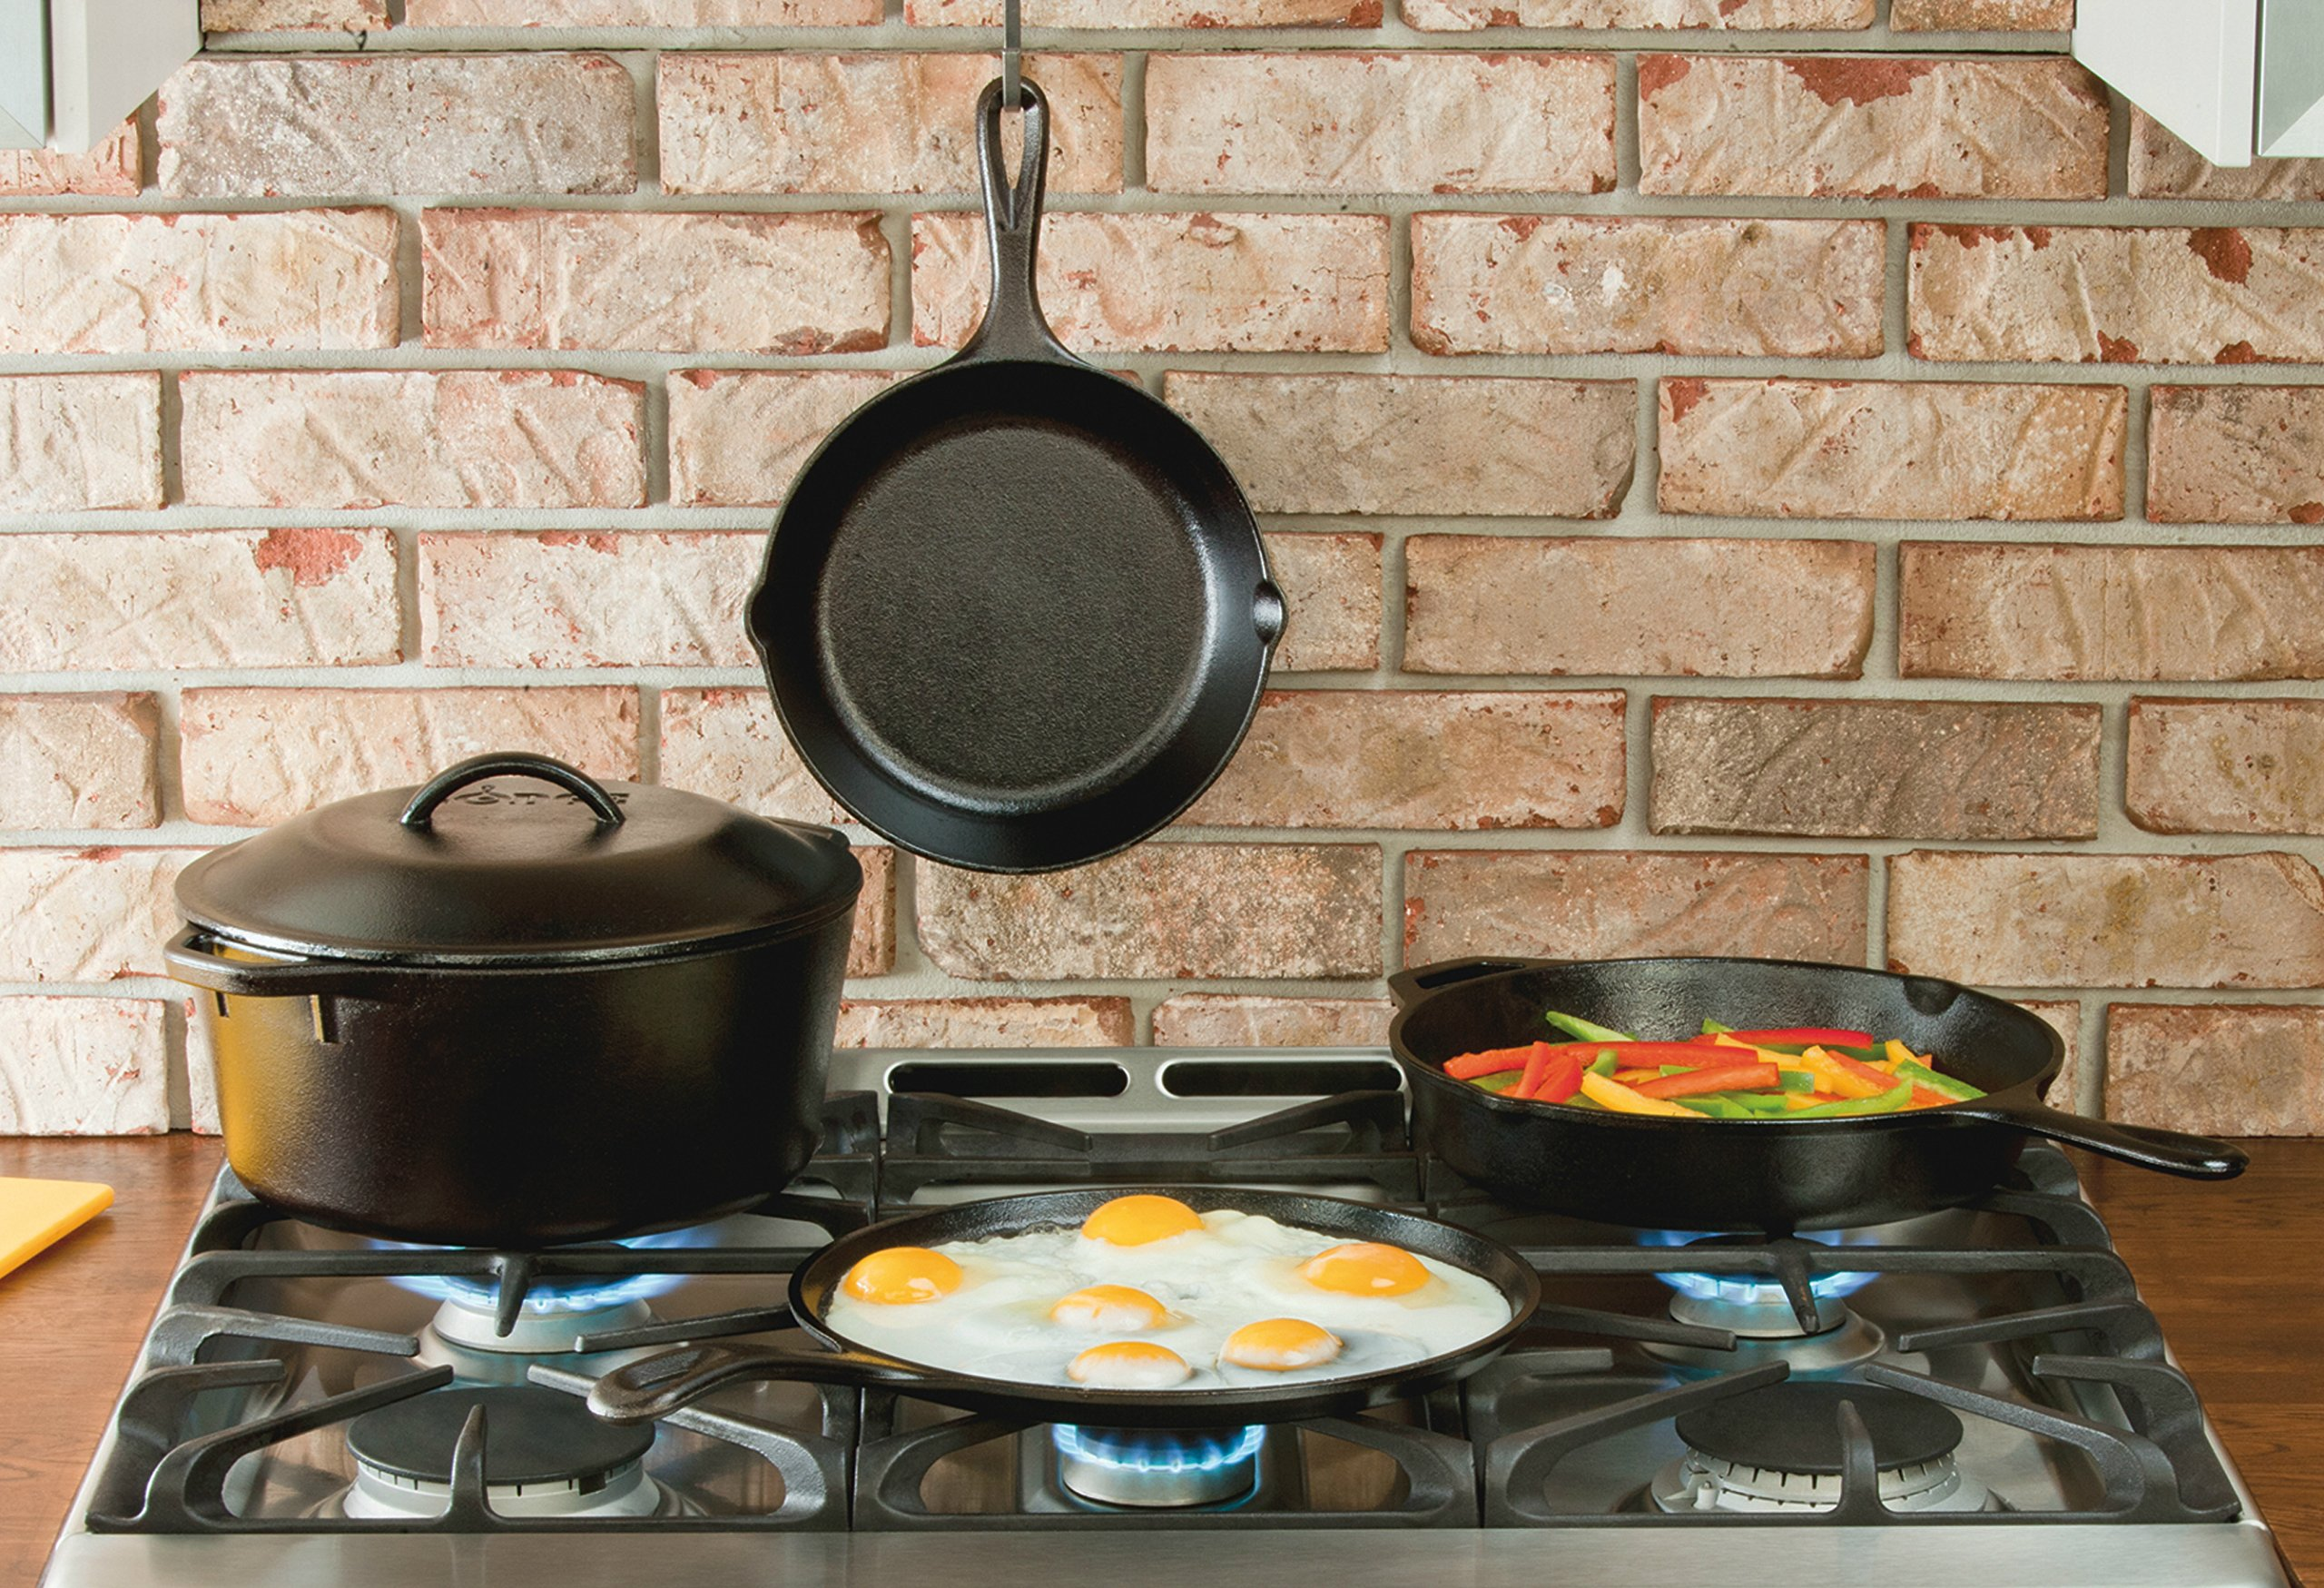 "Lodge Seasoned Cast Iron 5 Piece Bundle. 10.5"" Griddle, 8"" Skillet, 10.25"" Skillet, 10.25"" Dutch Oven, and 10.25"" Lid by Lodge (Image #2)"